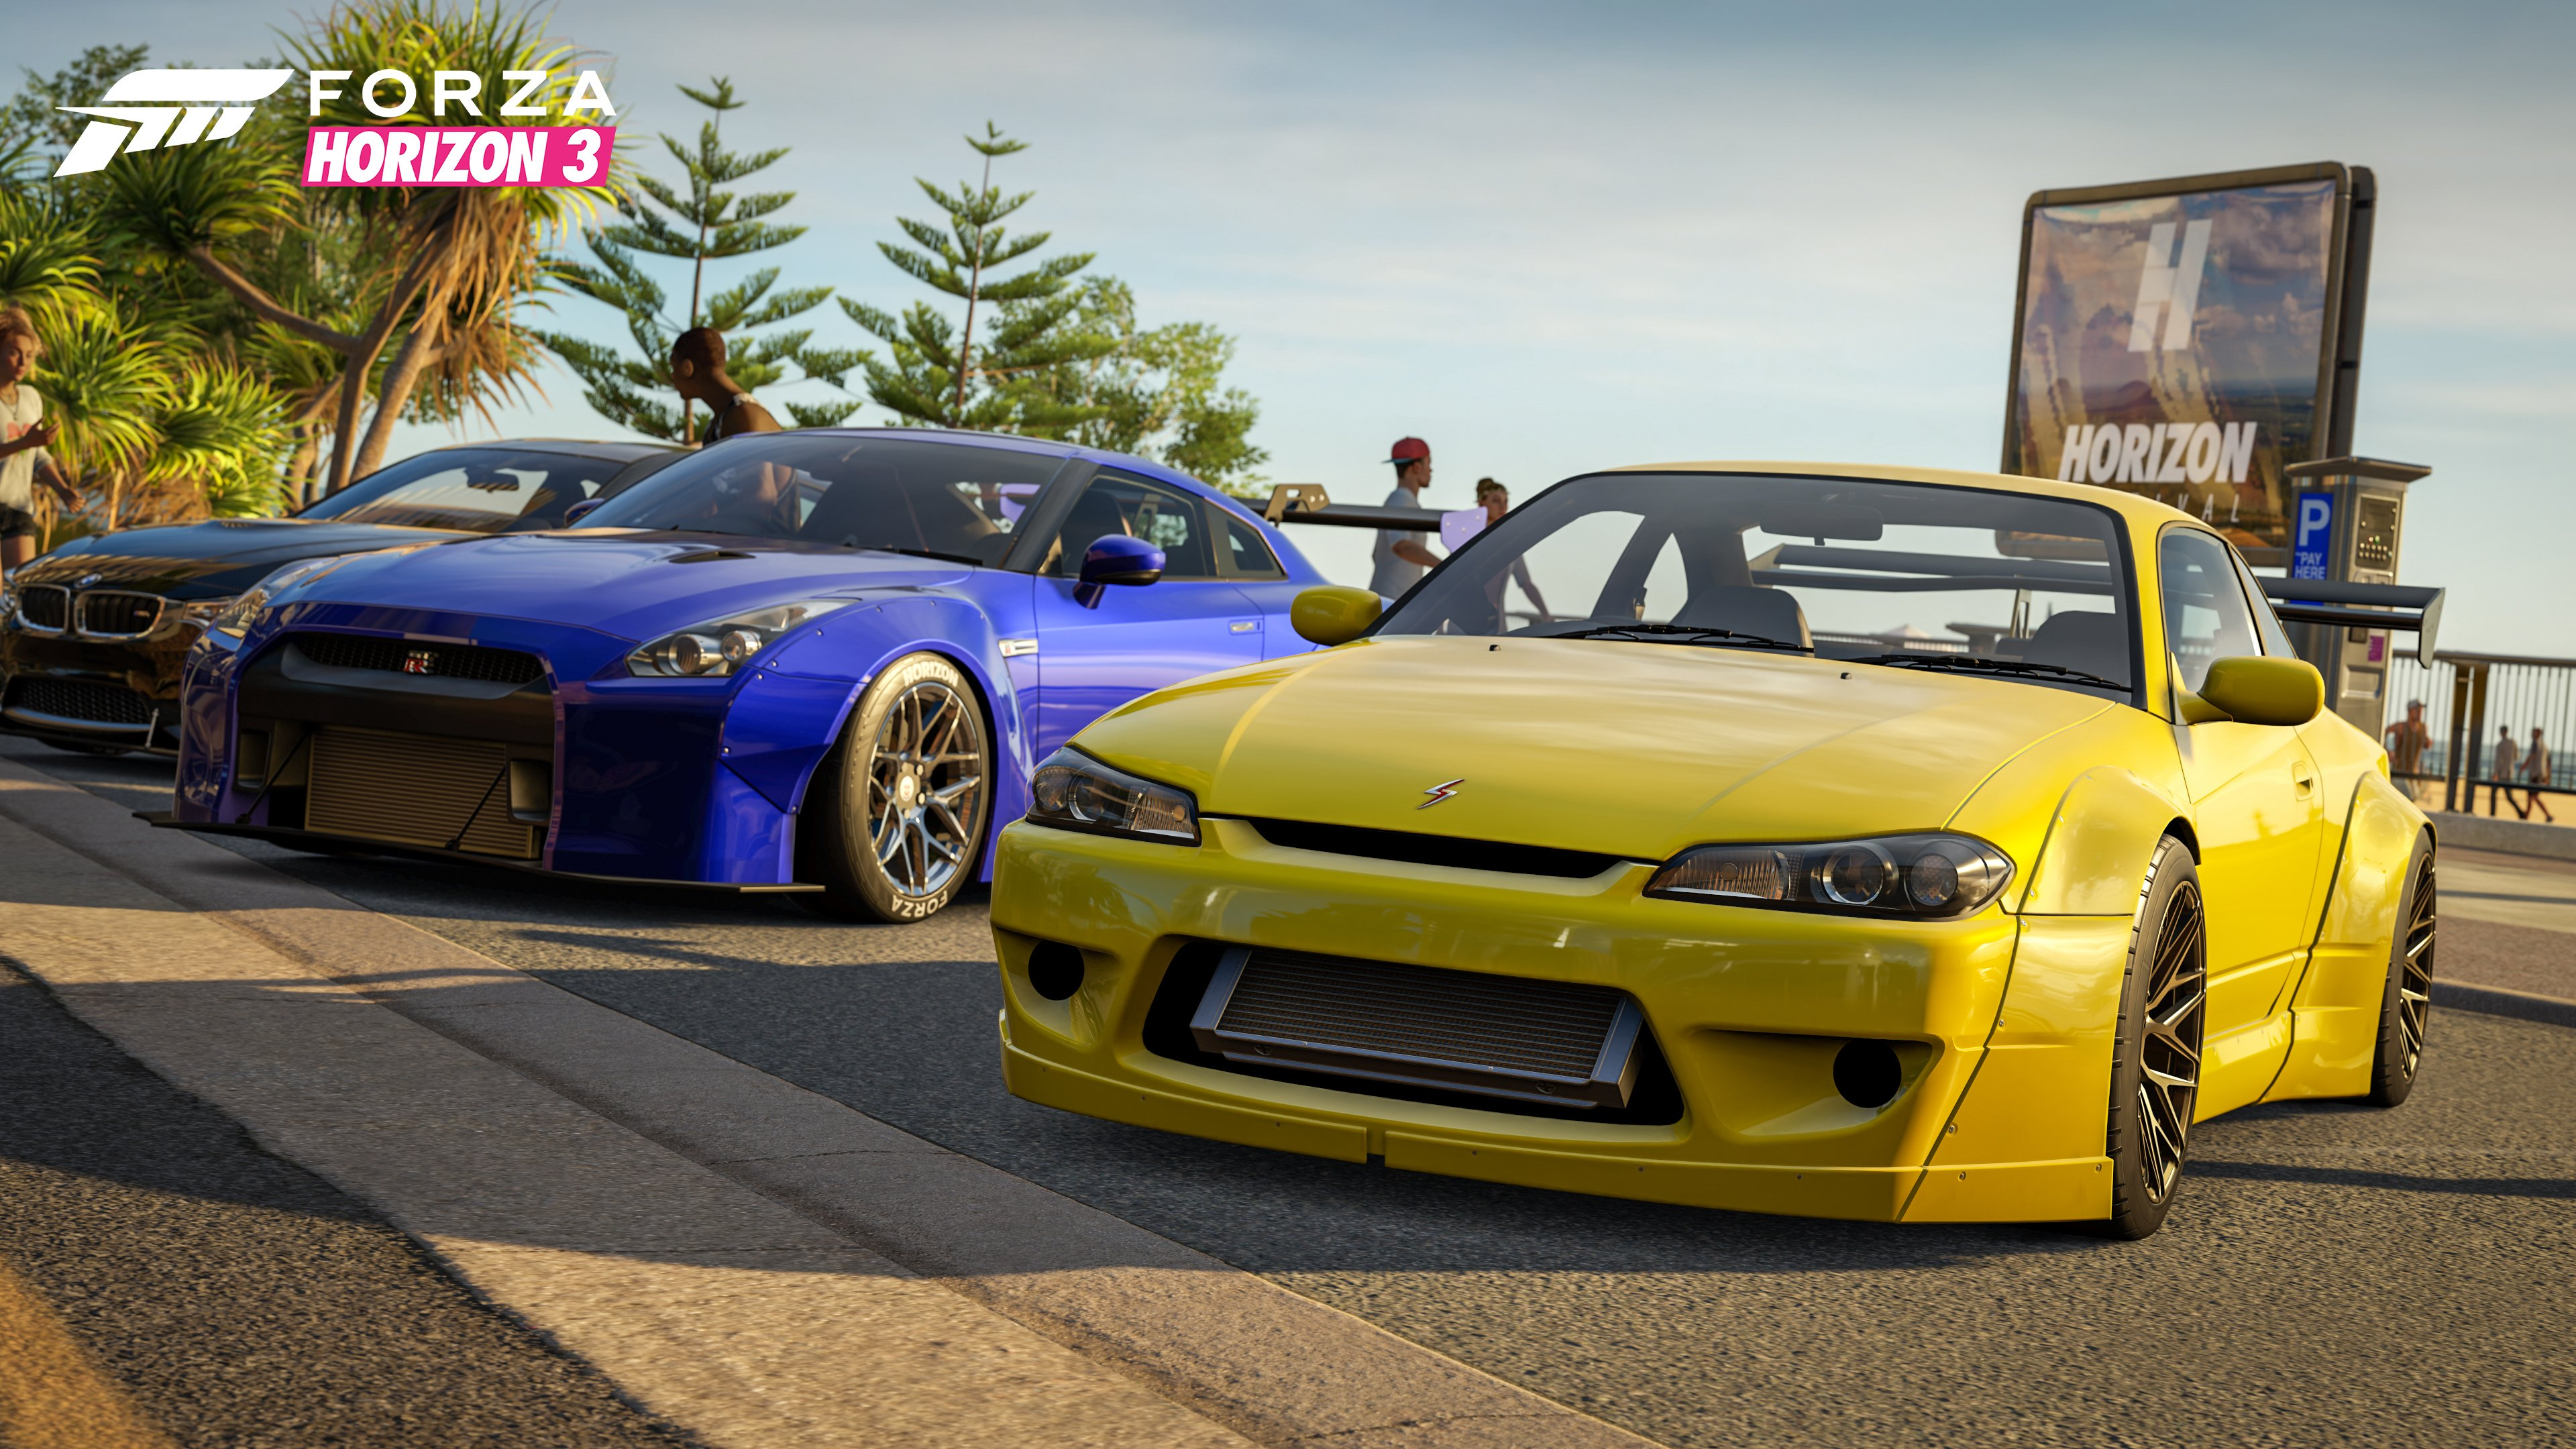 forzahorizon3_review_03_widebodies_wm